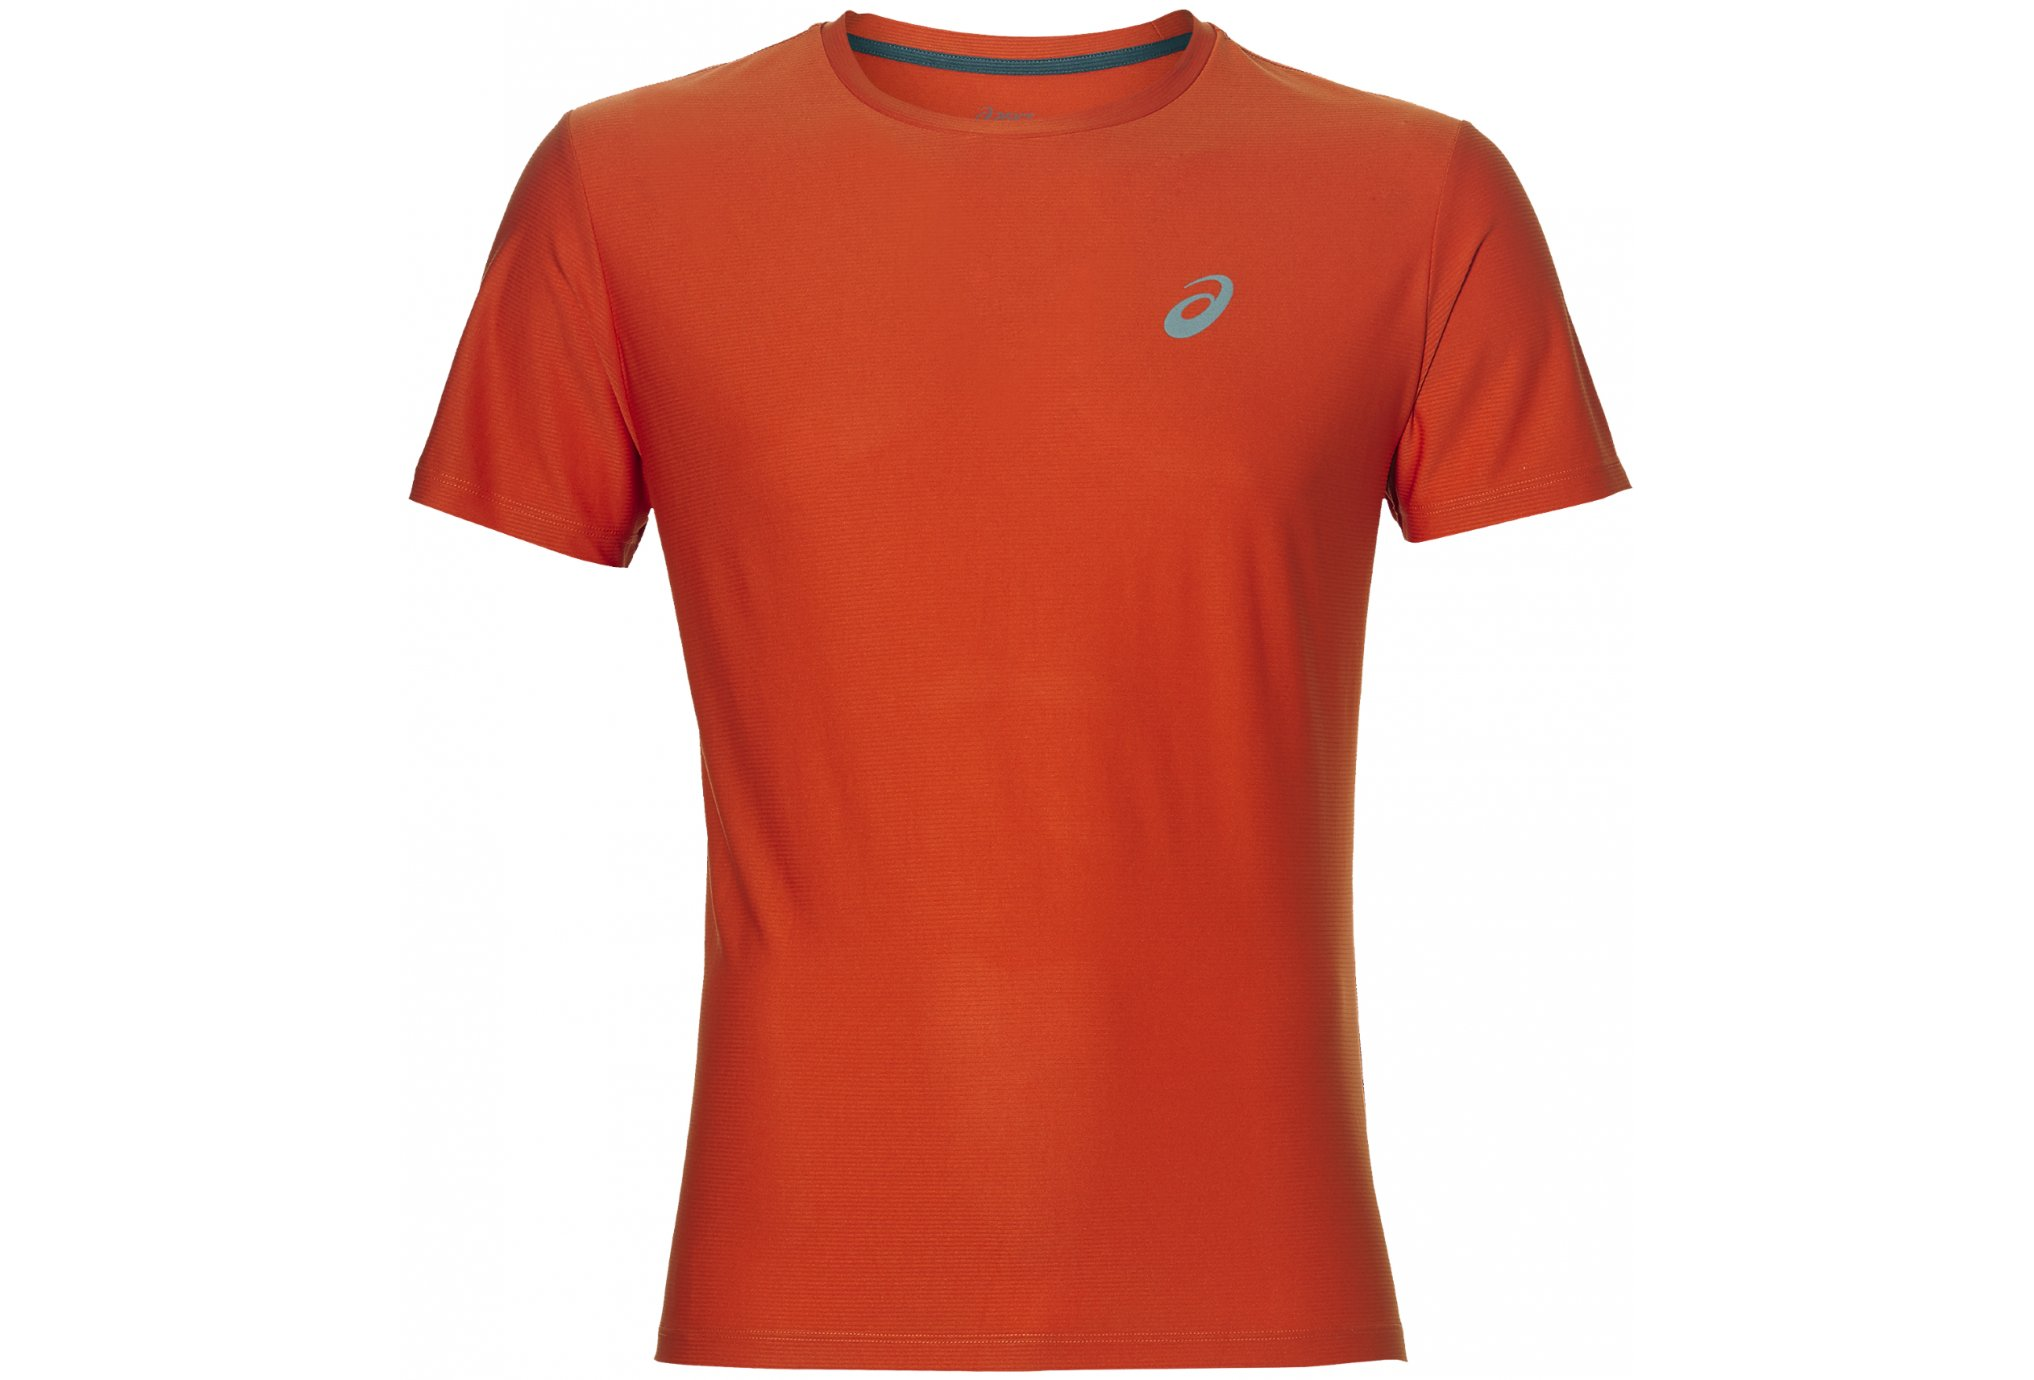 Asics Tee-shirt SS Top M vêtement running homme